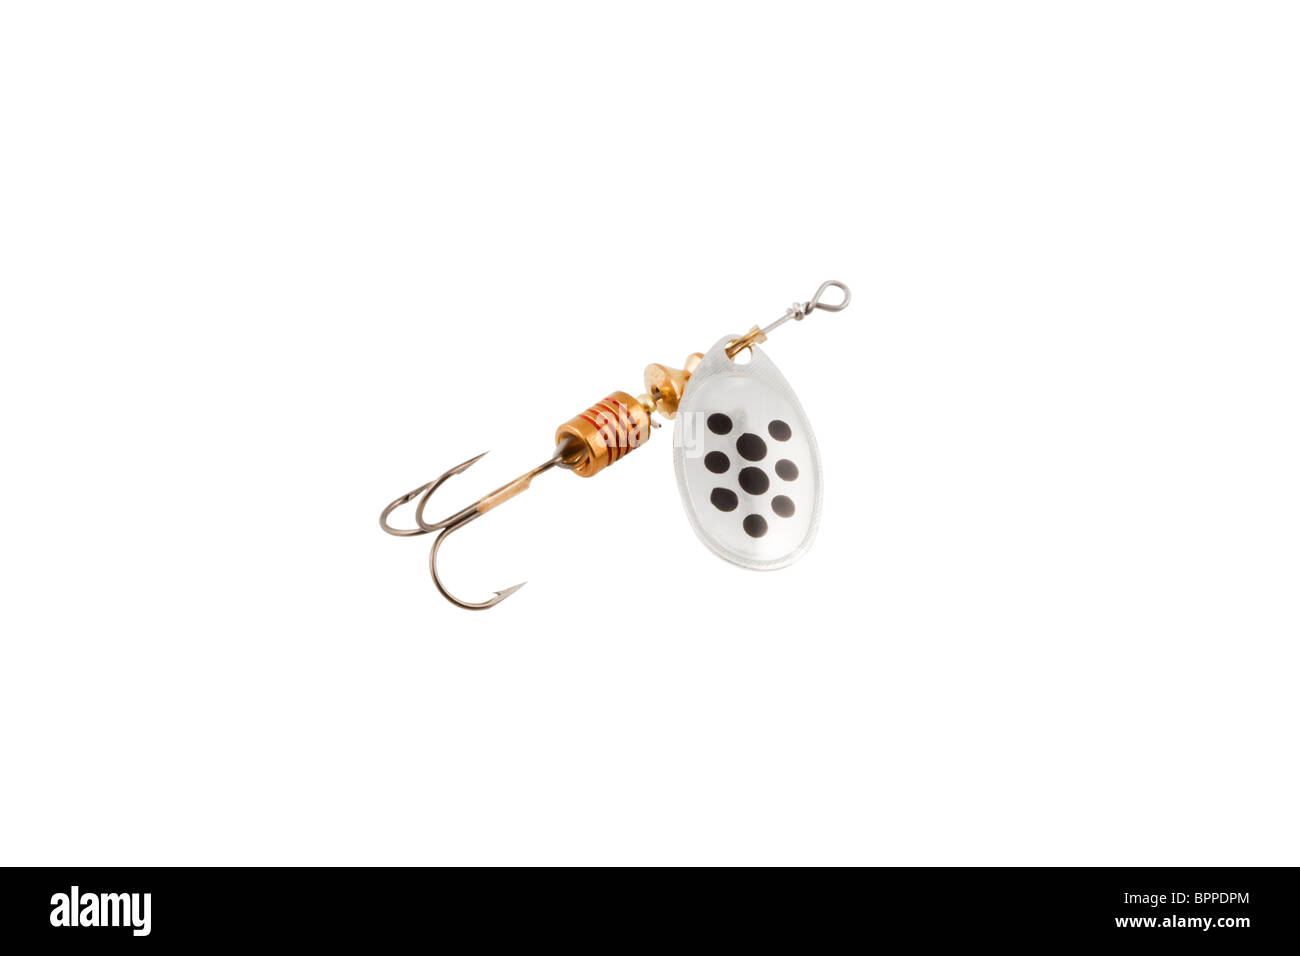 fishing tackle (spinning) isolated on a white background - Stock Image